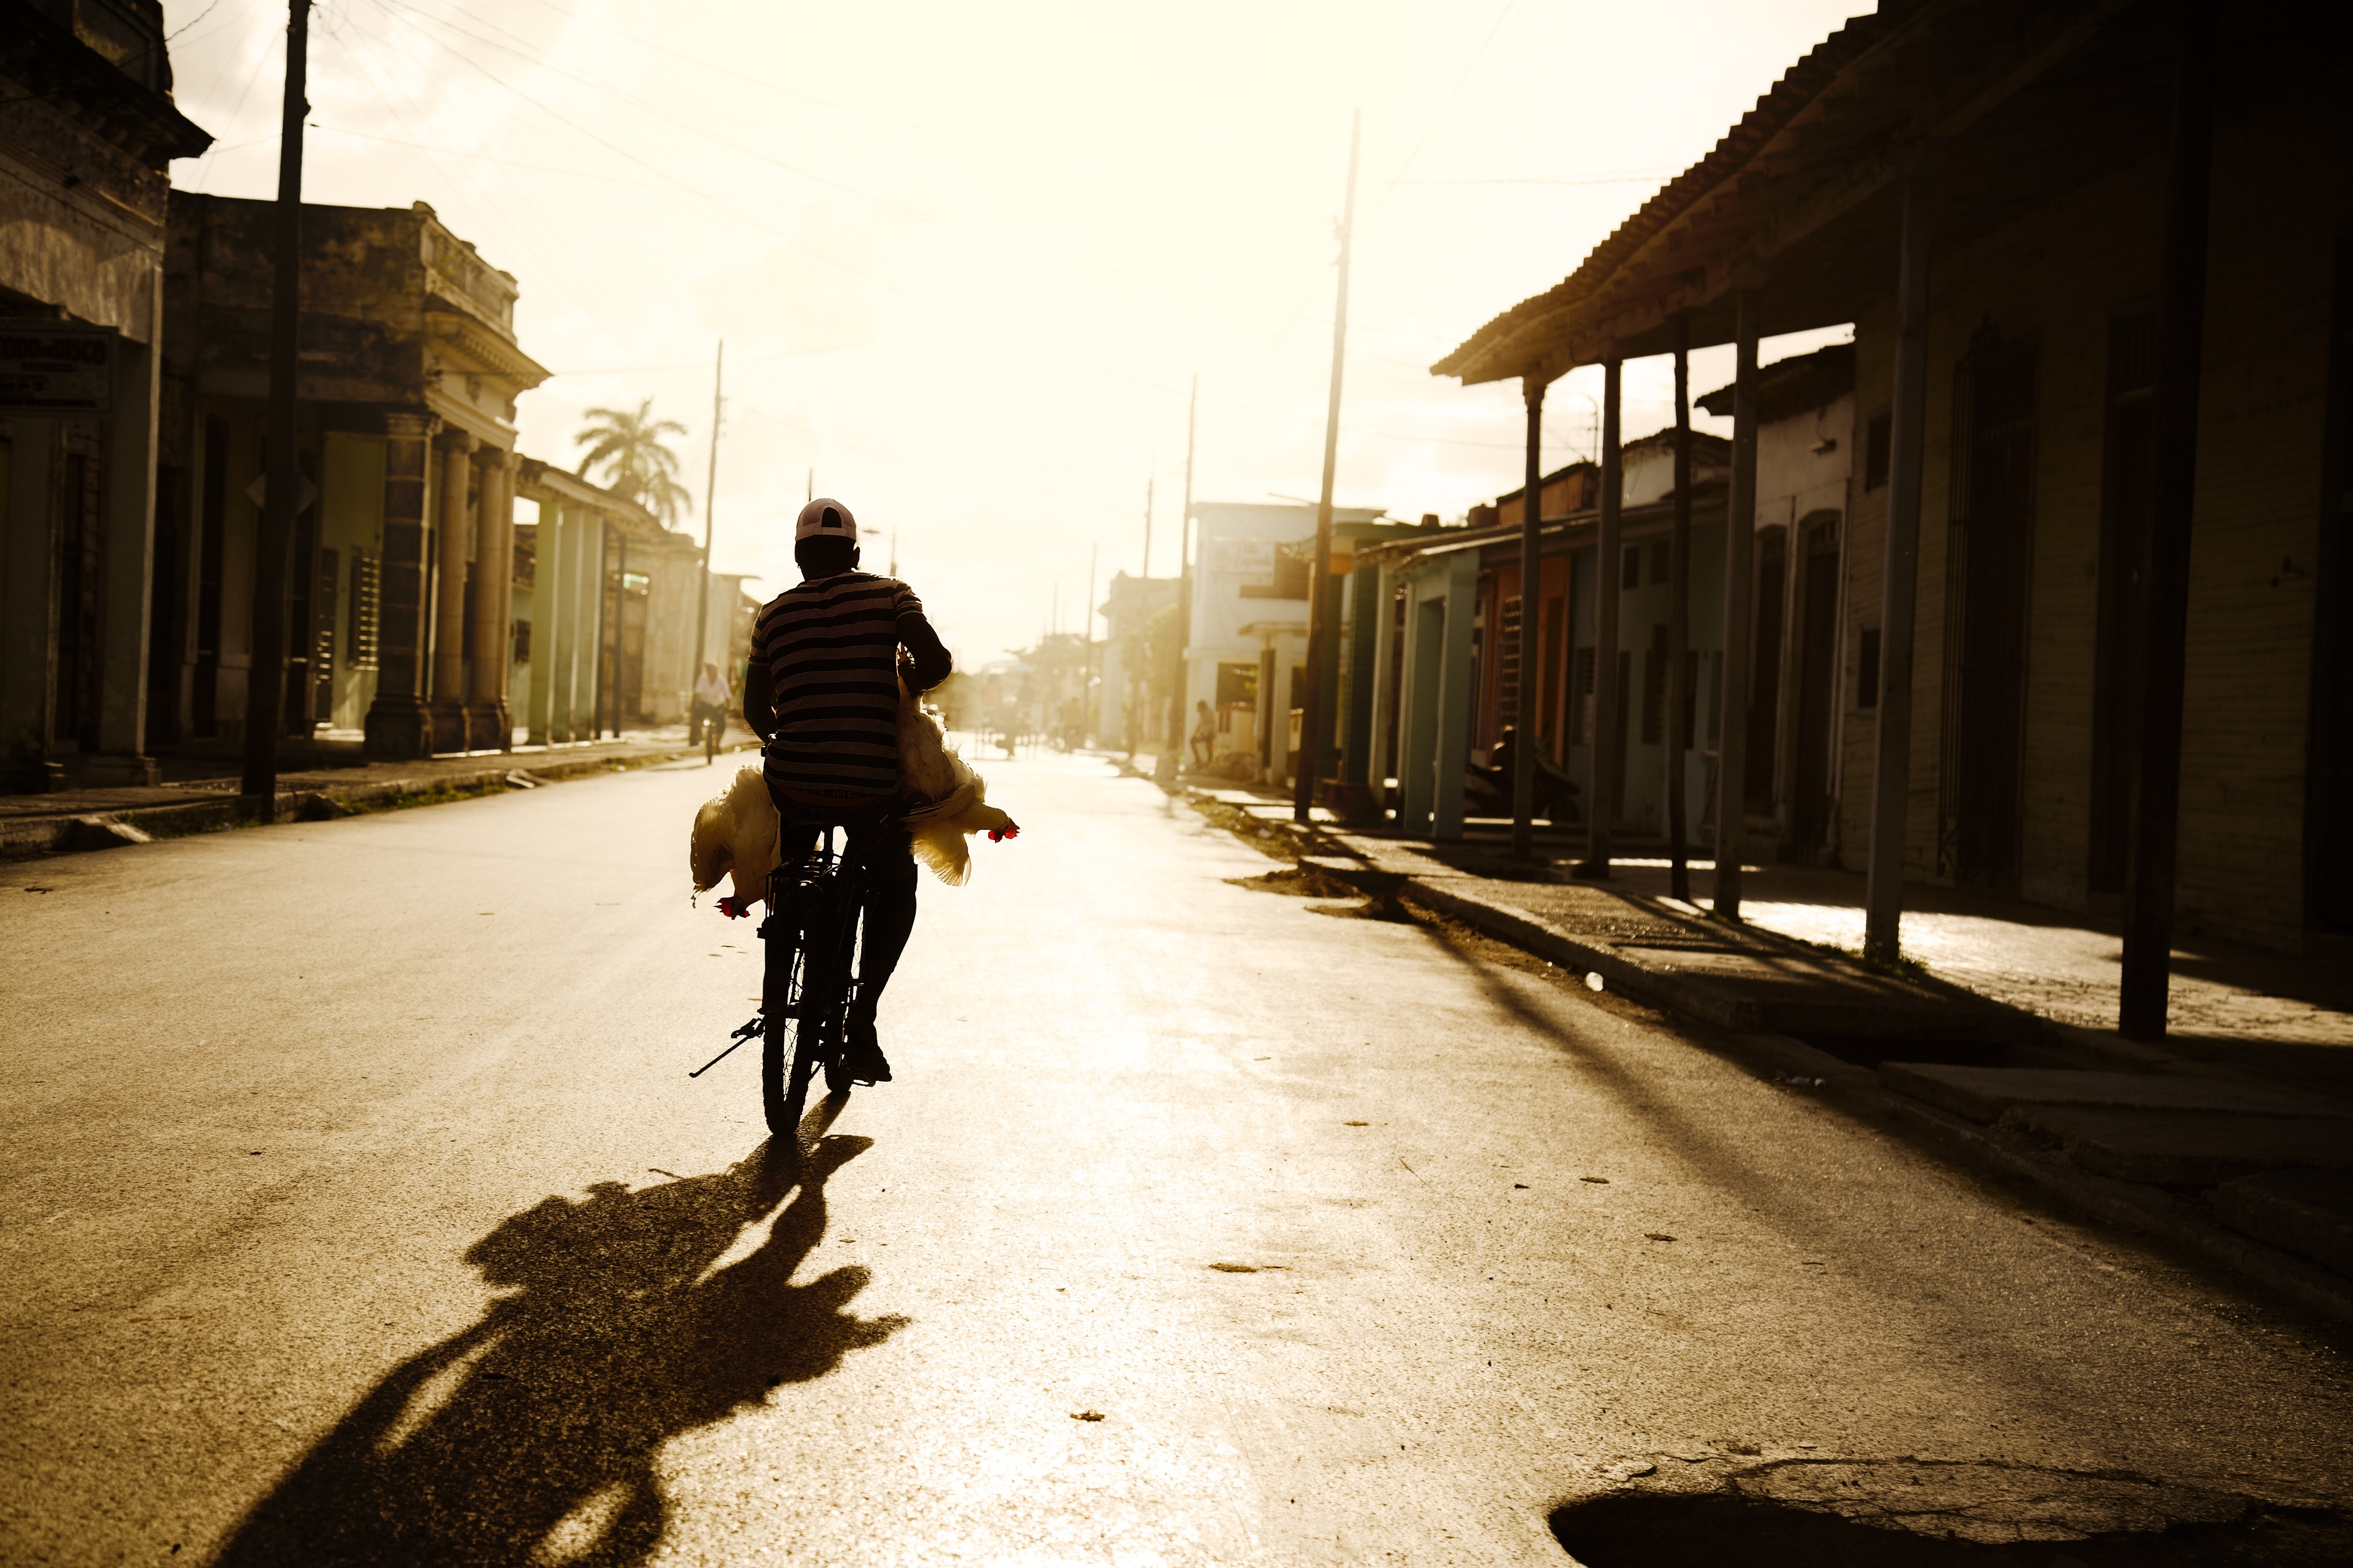 Person Riding on Bike Photo Shot during Daylight, Adult, Road, Urban, Travel, HQ Photo